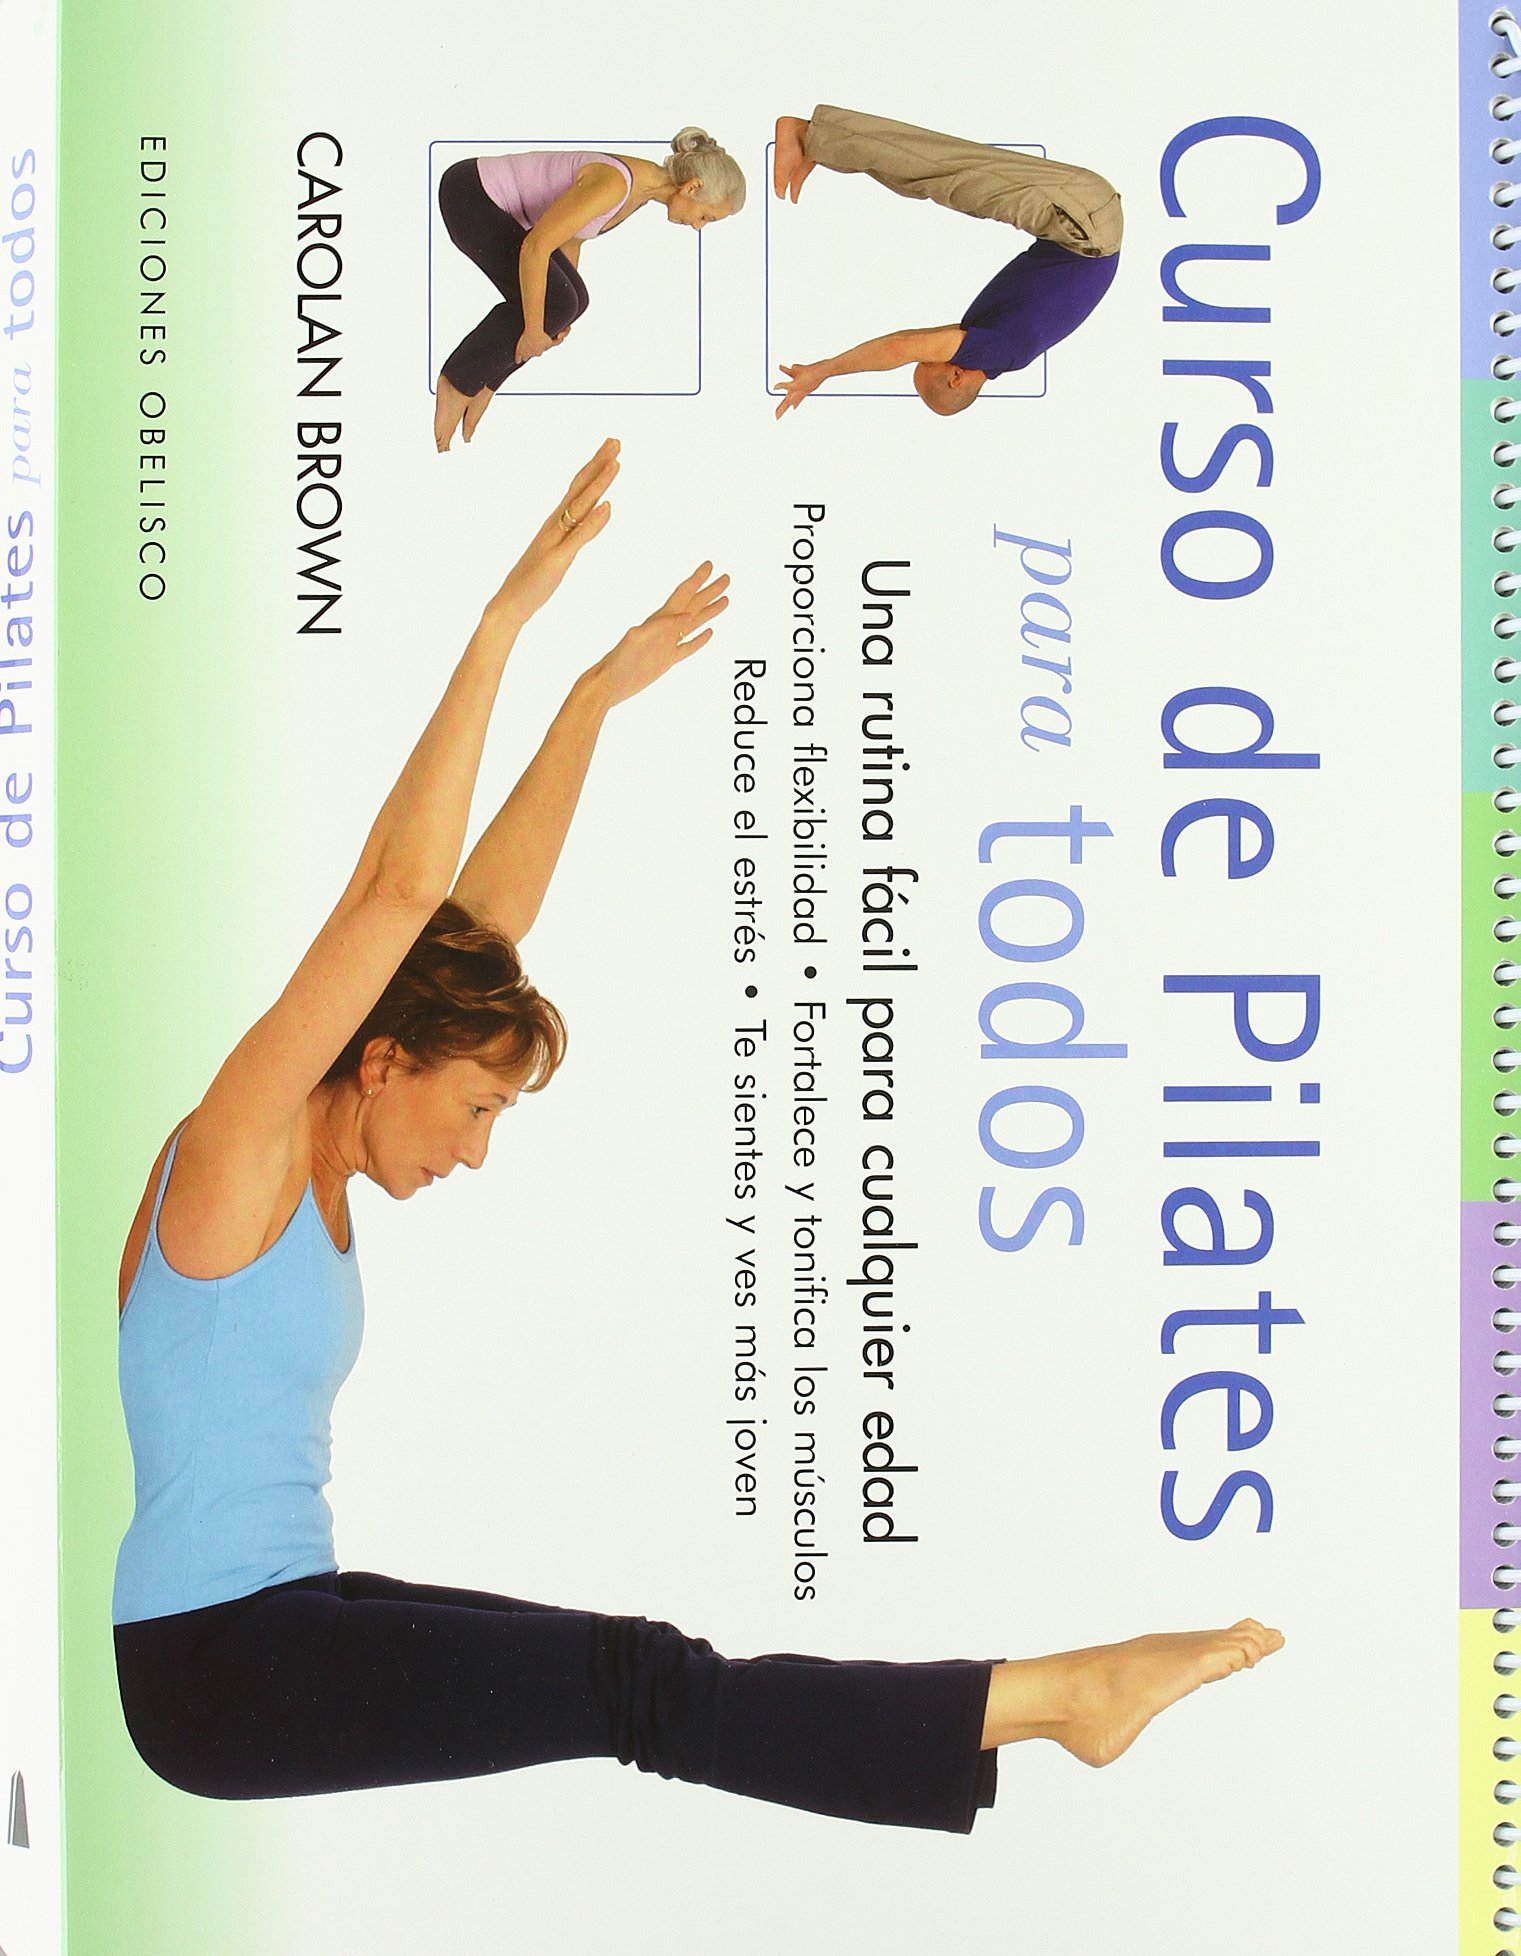 Curso de Pilates para todos (Spanish Edition): Carola Brown ...